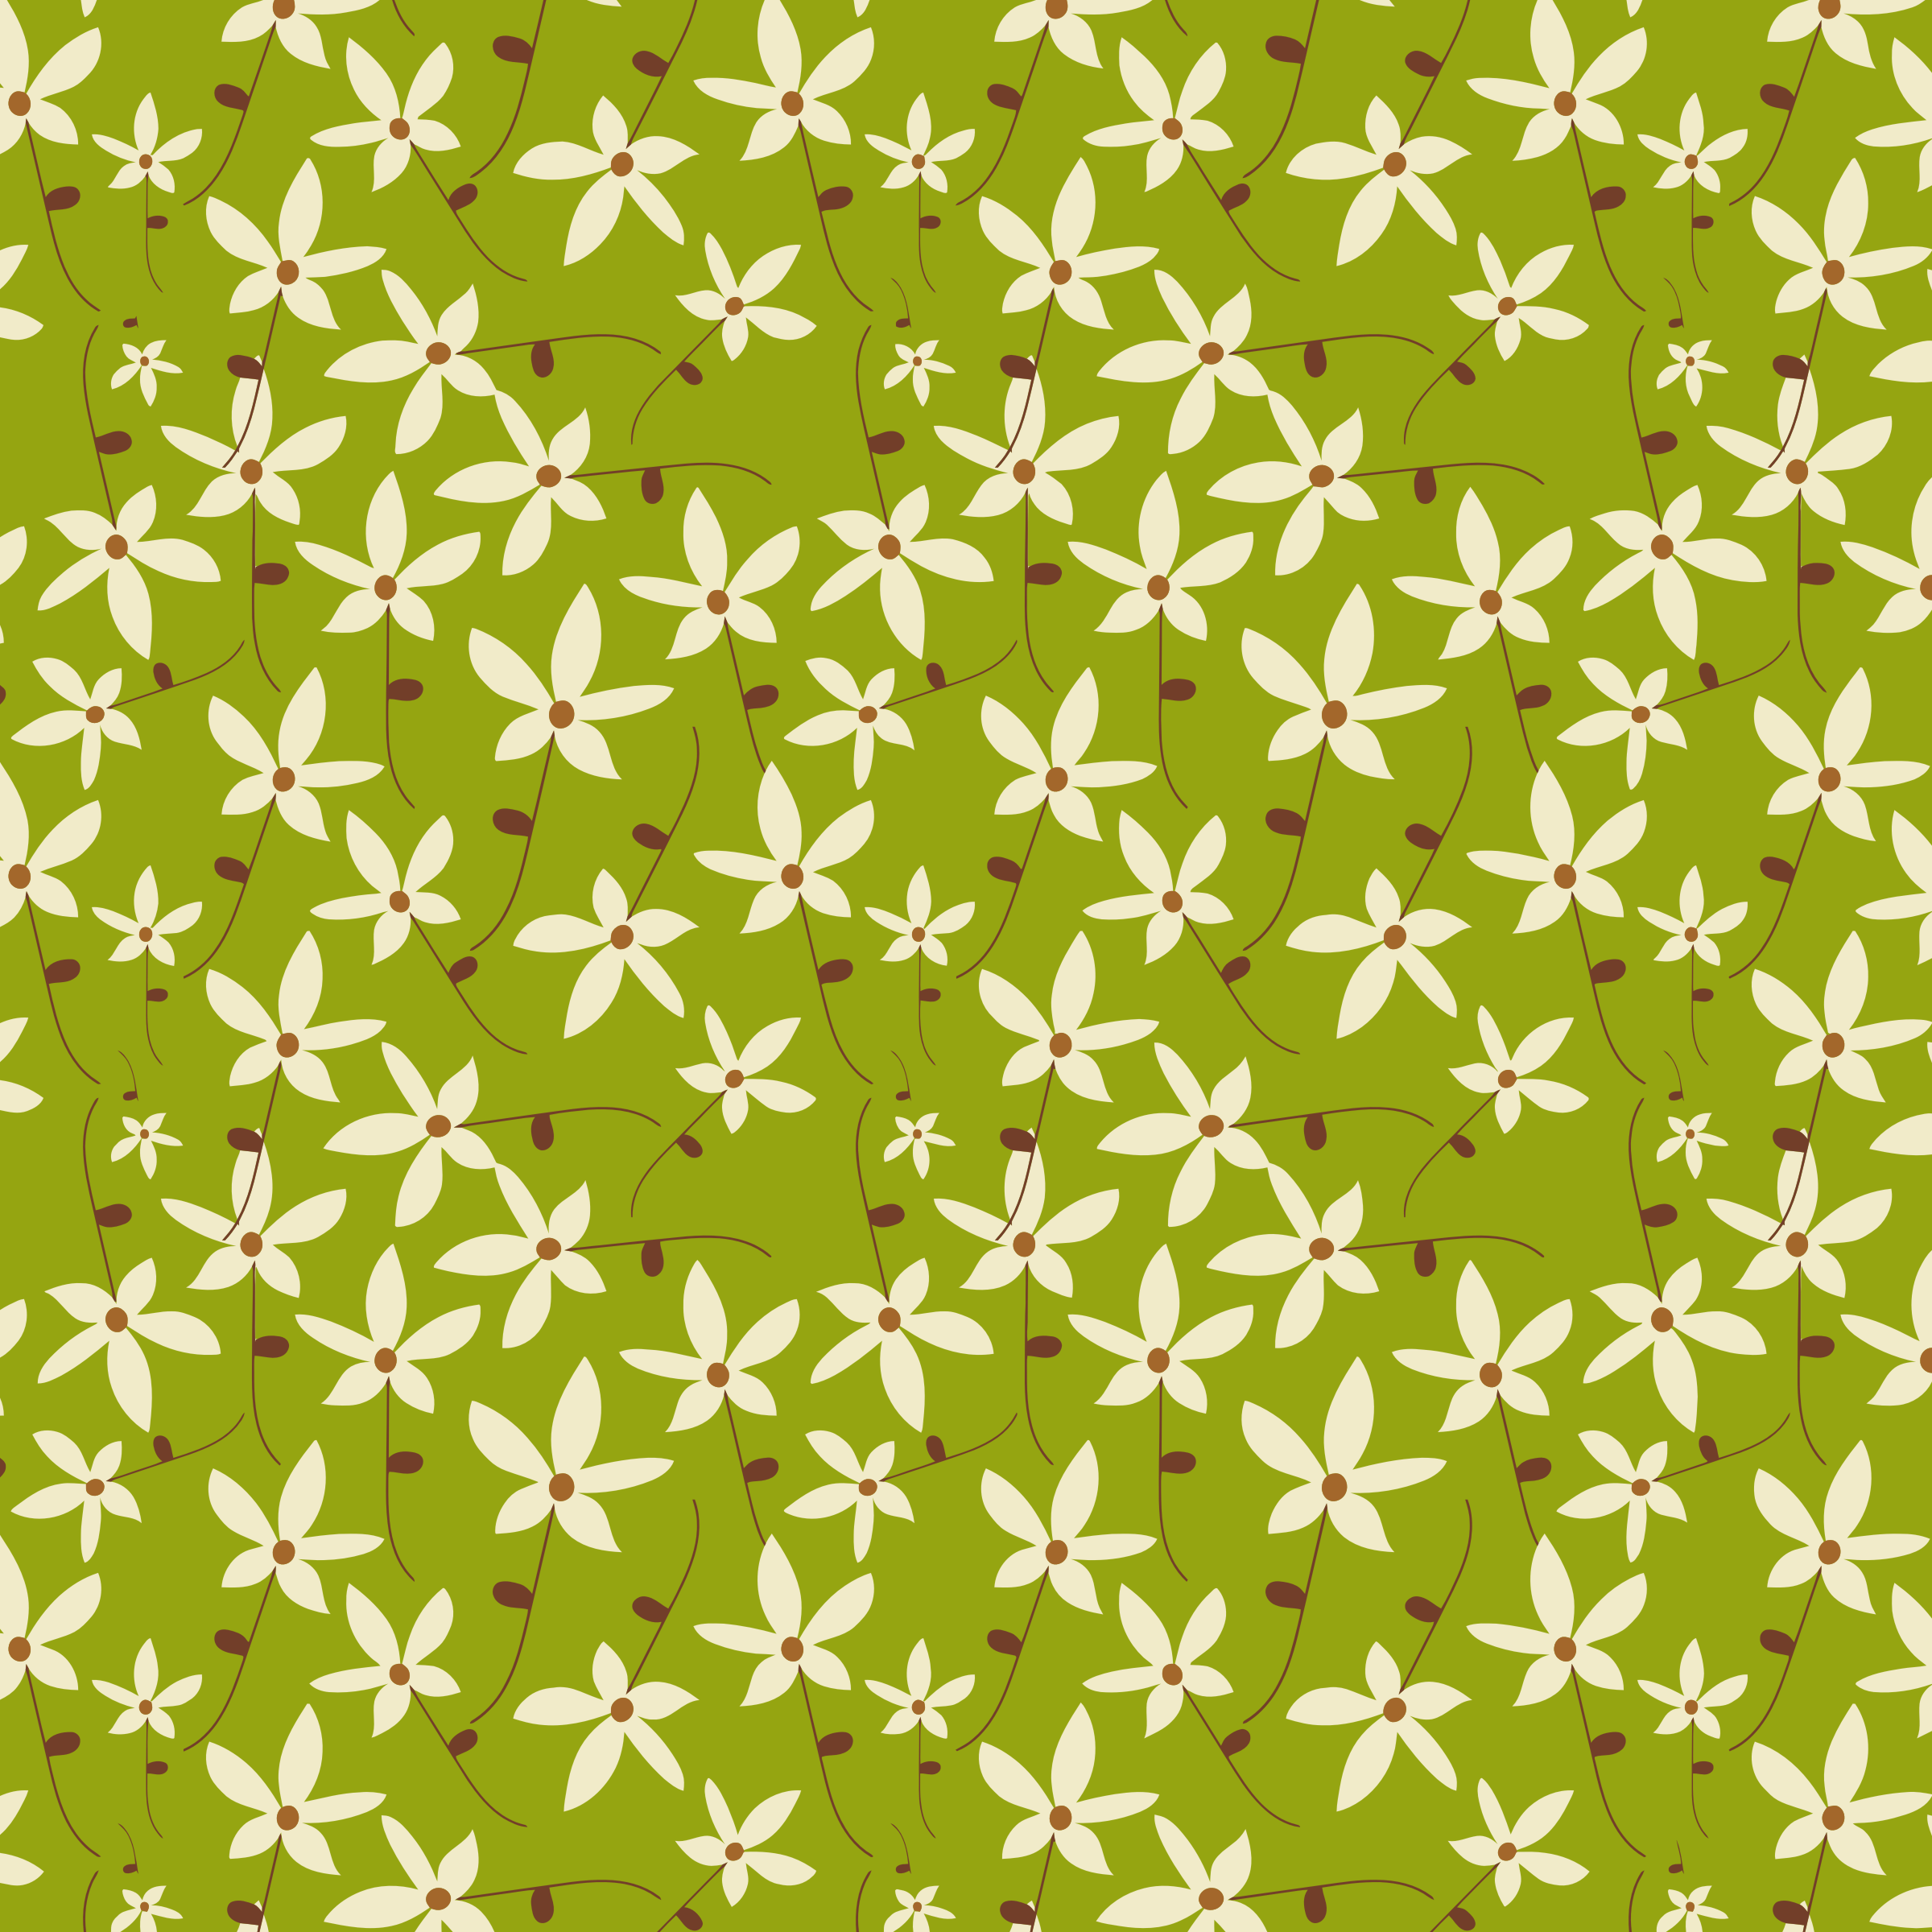 Floral Seamless Pattern Background by GDJ